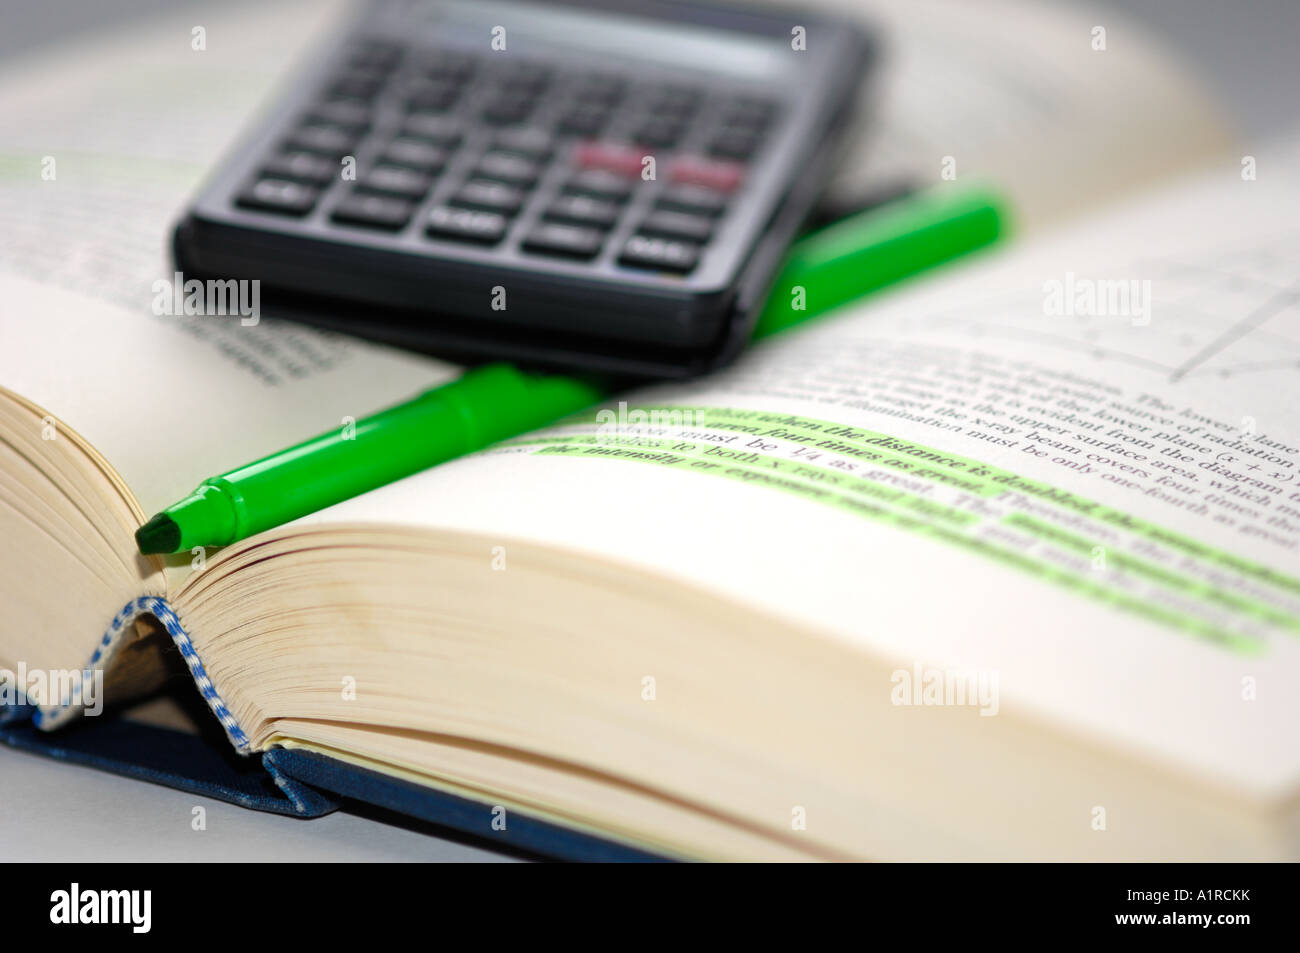 Studying text with calculator - Stock Image